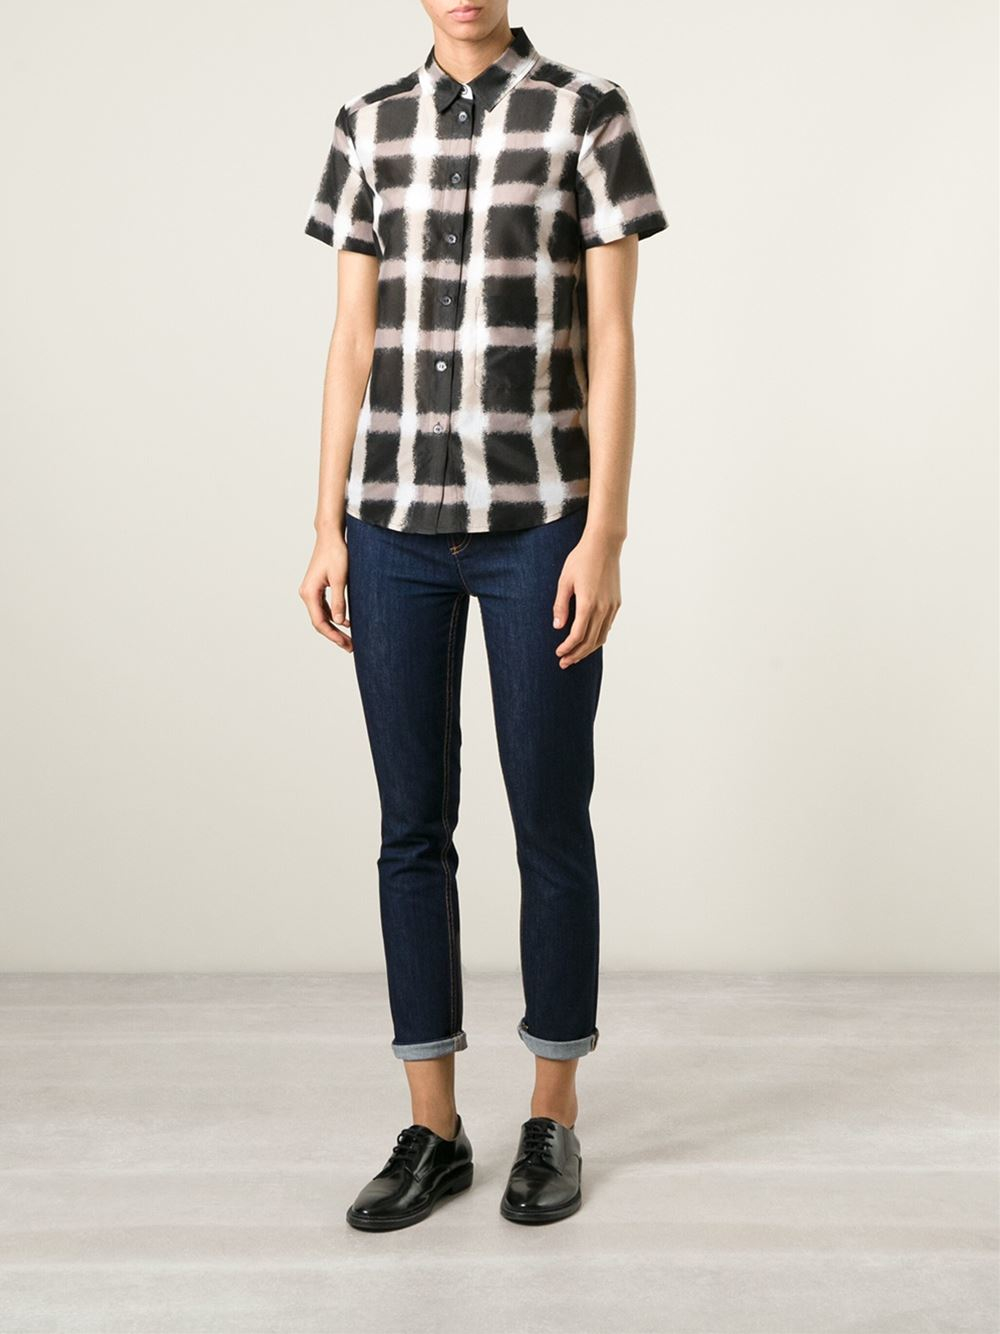 Marc by marc jacobs Blurred Gingham-Print Shirt in Black ...